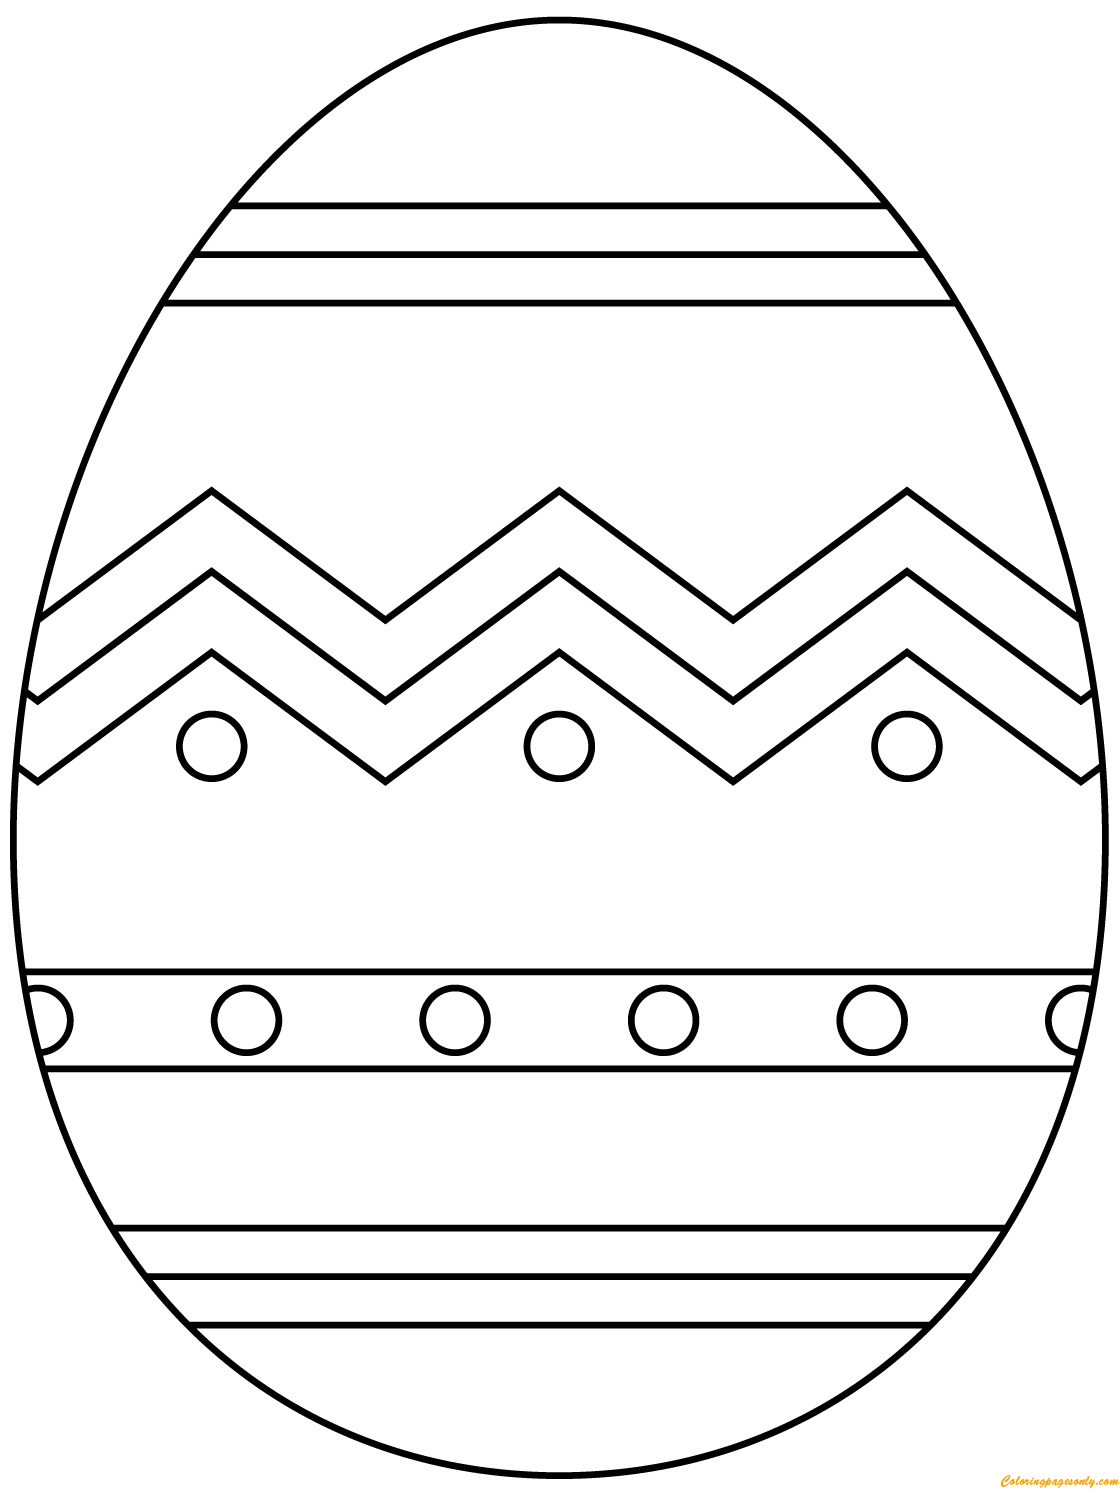 Abstract Pattern Easter Egg Coloring Page